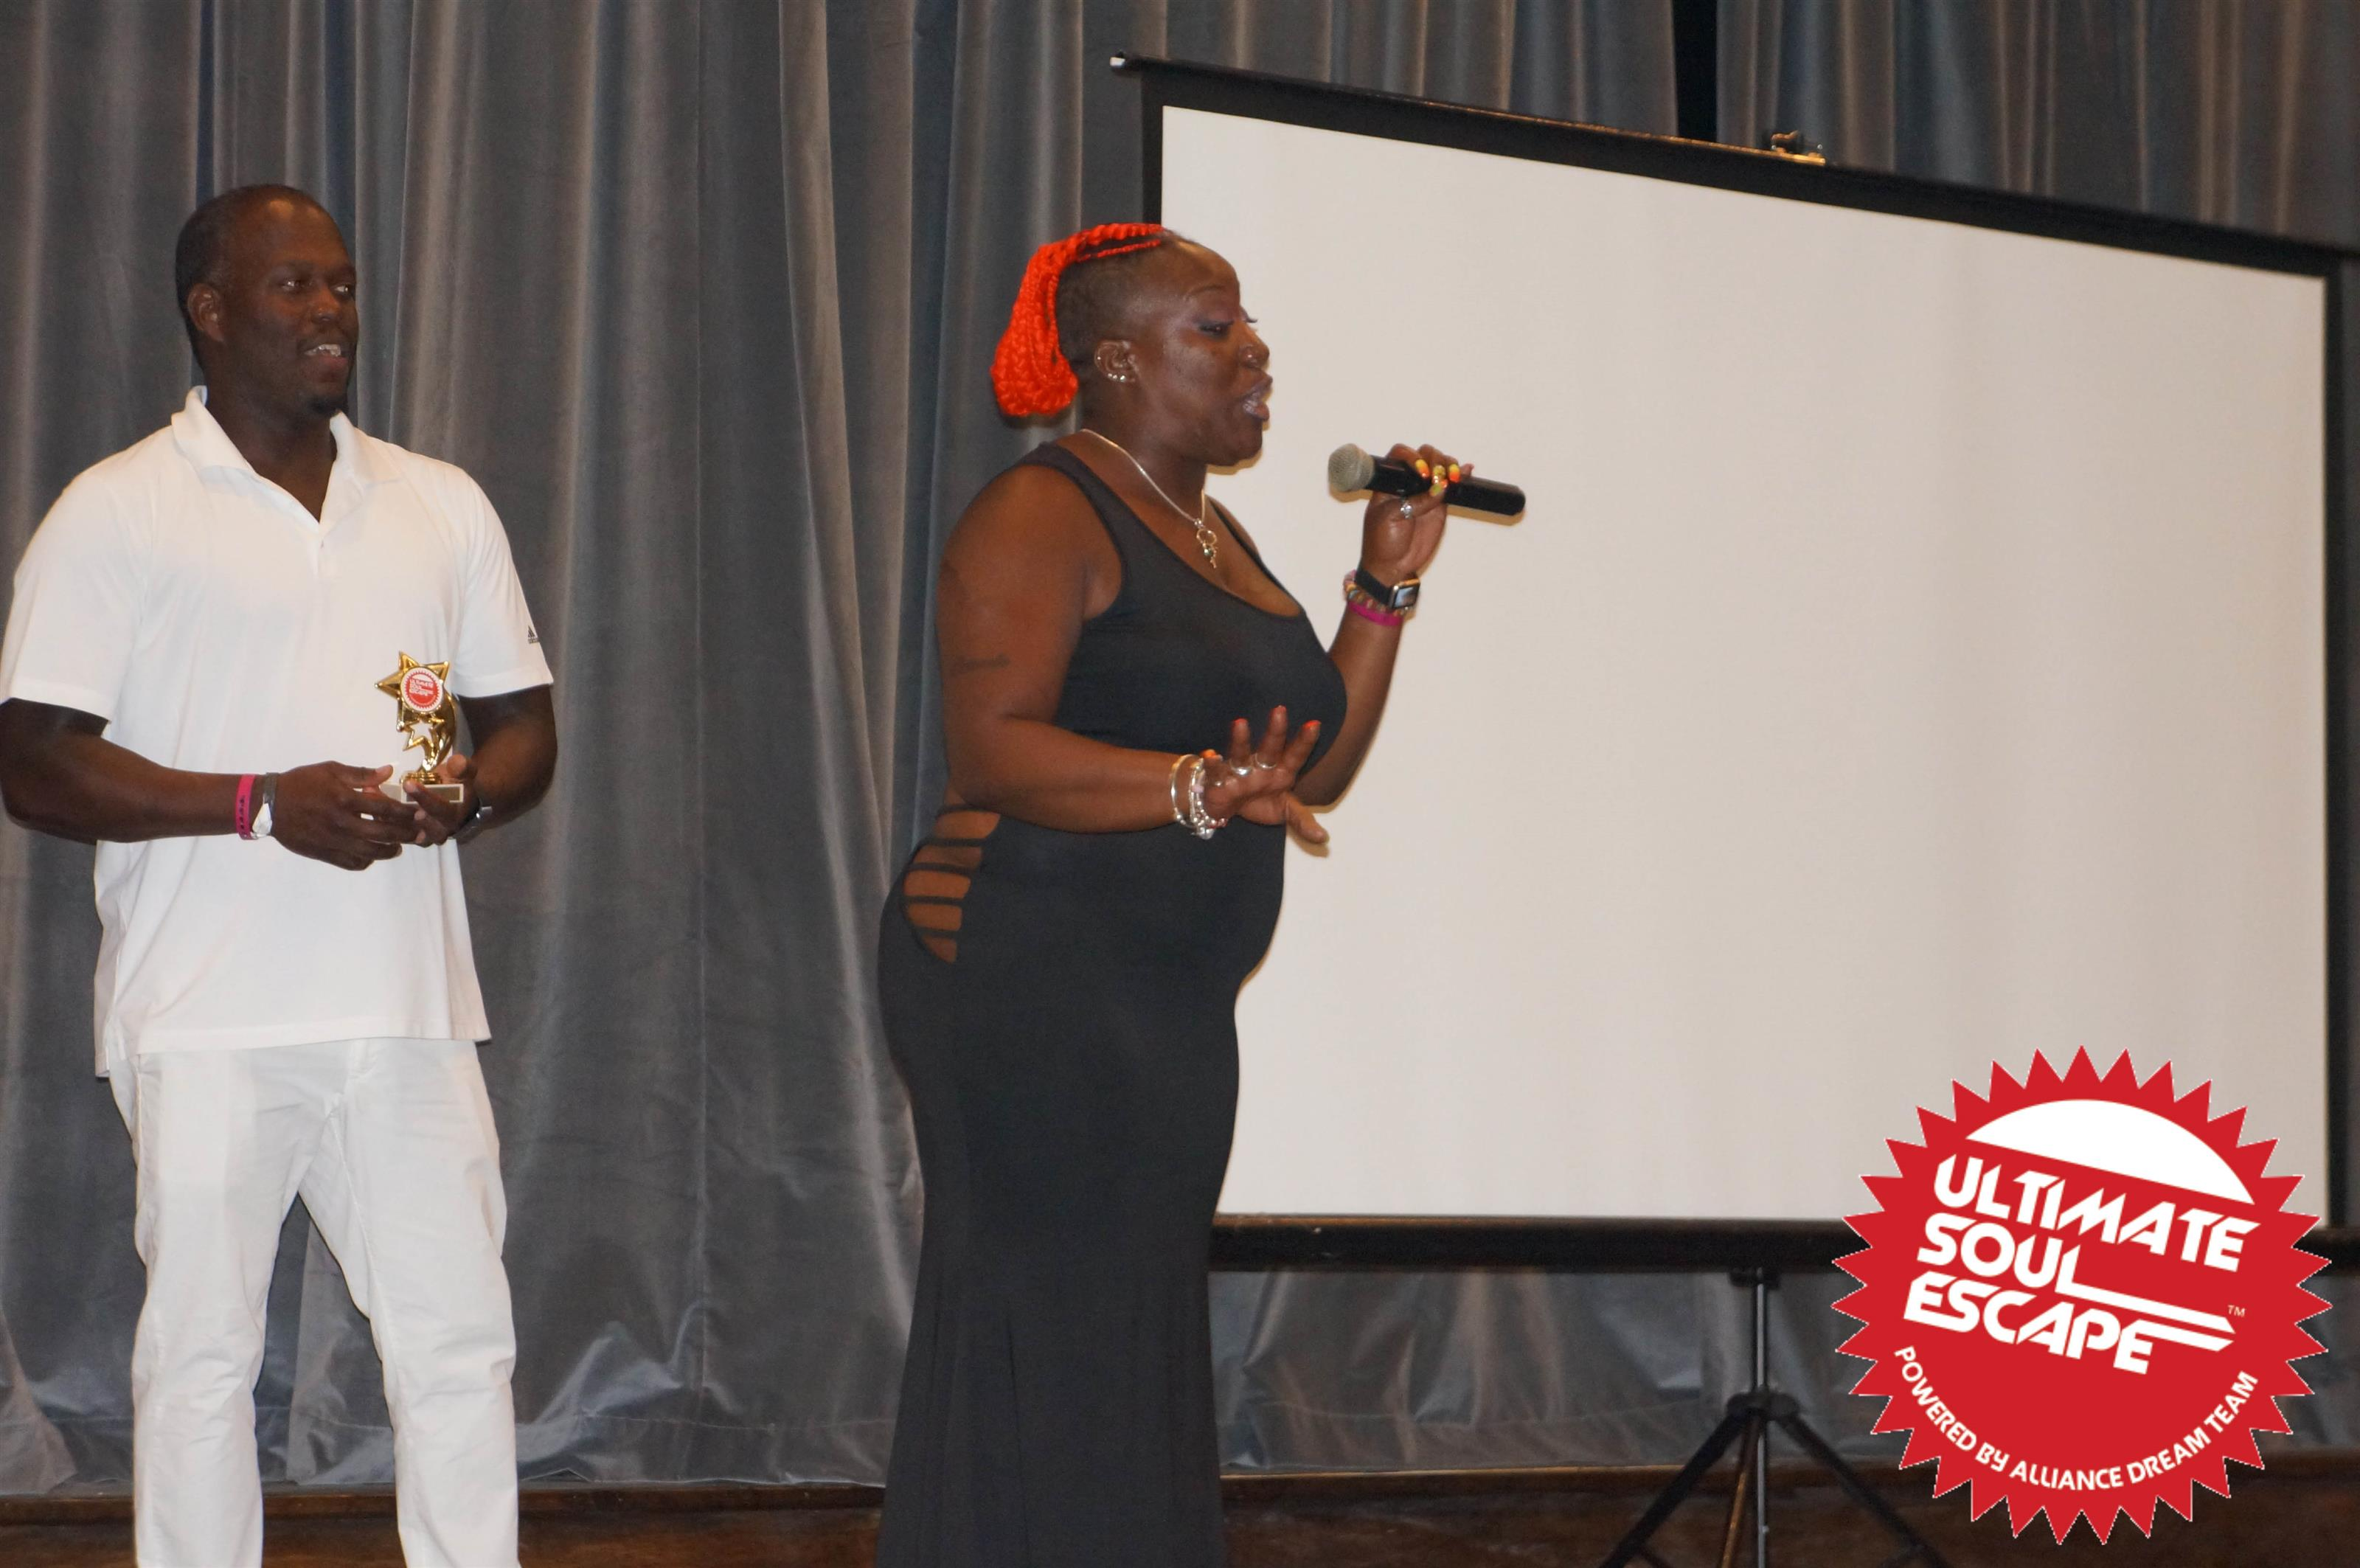 a man giving out an award and a lady giving a speech